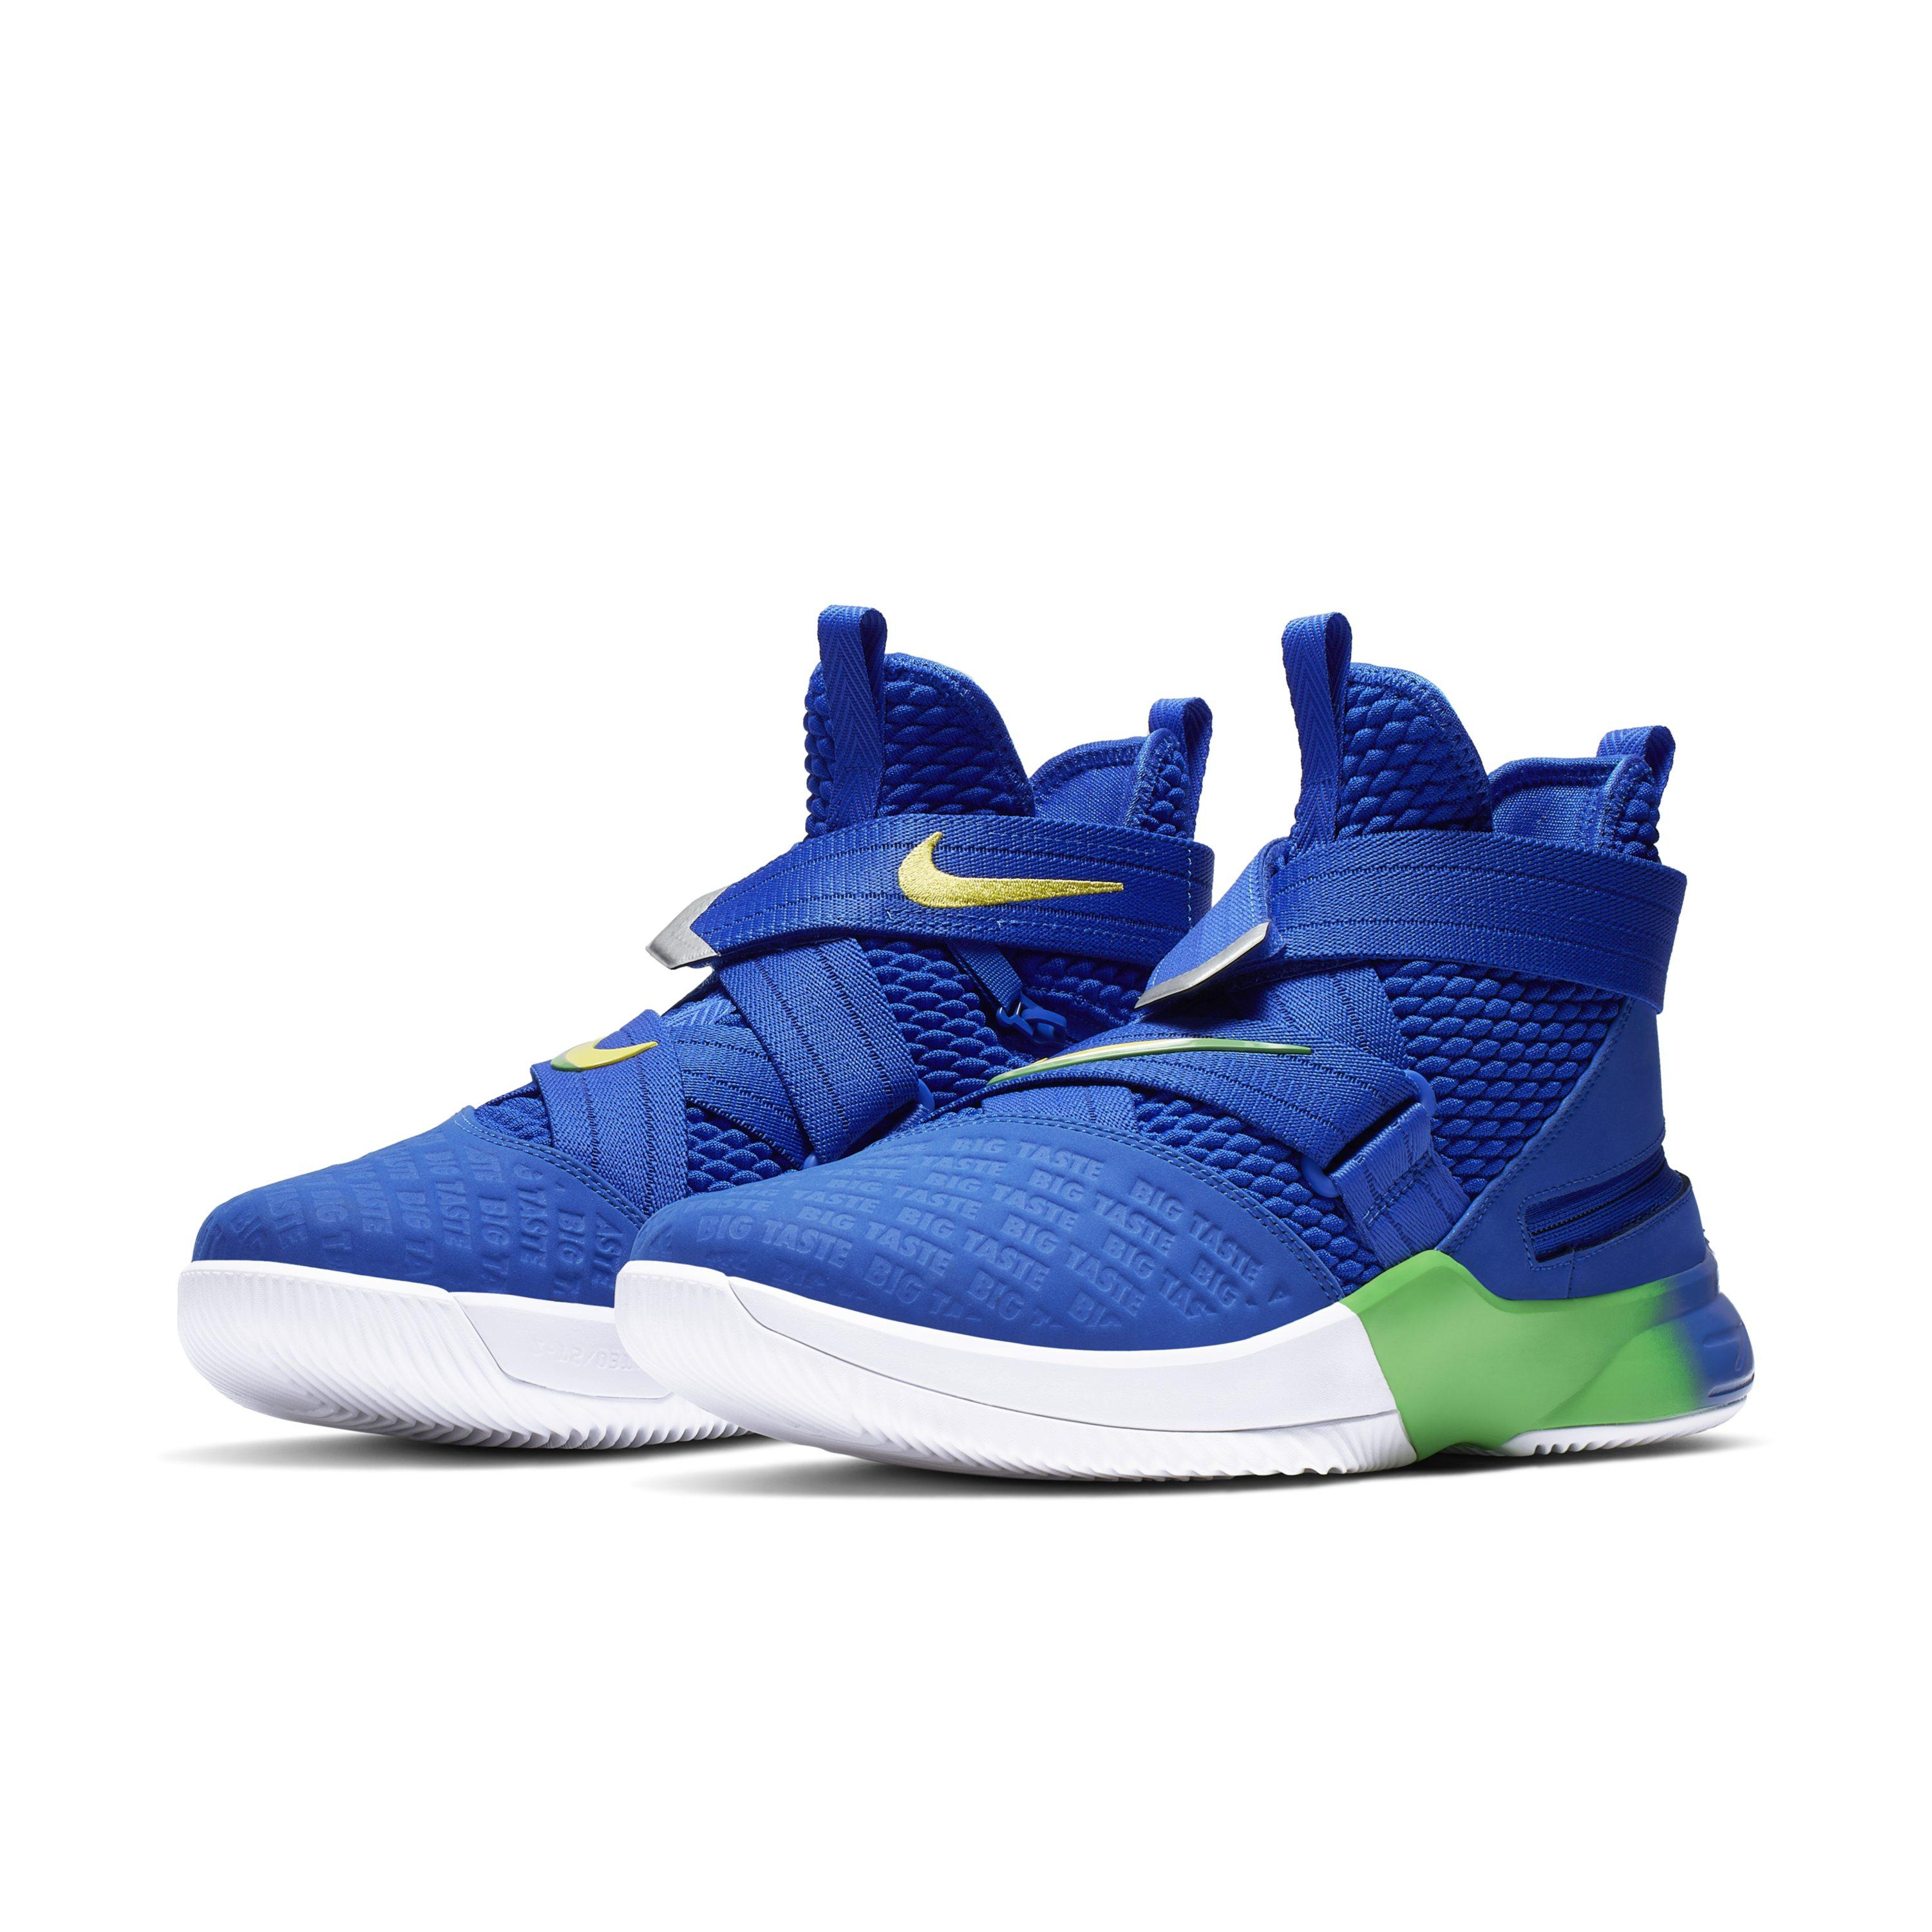 0377f091a7d Nike - Blue Lebron Soldier 12 Flyease Basketball Shoe for Men - Lyst. View  fullscreen